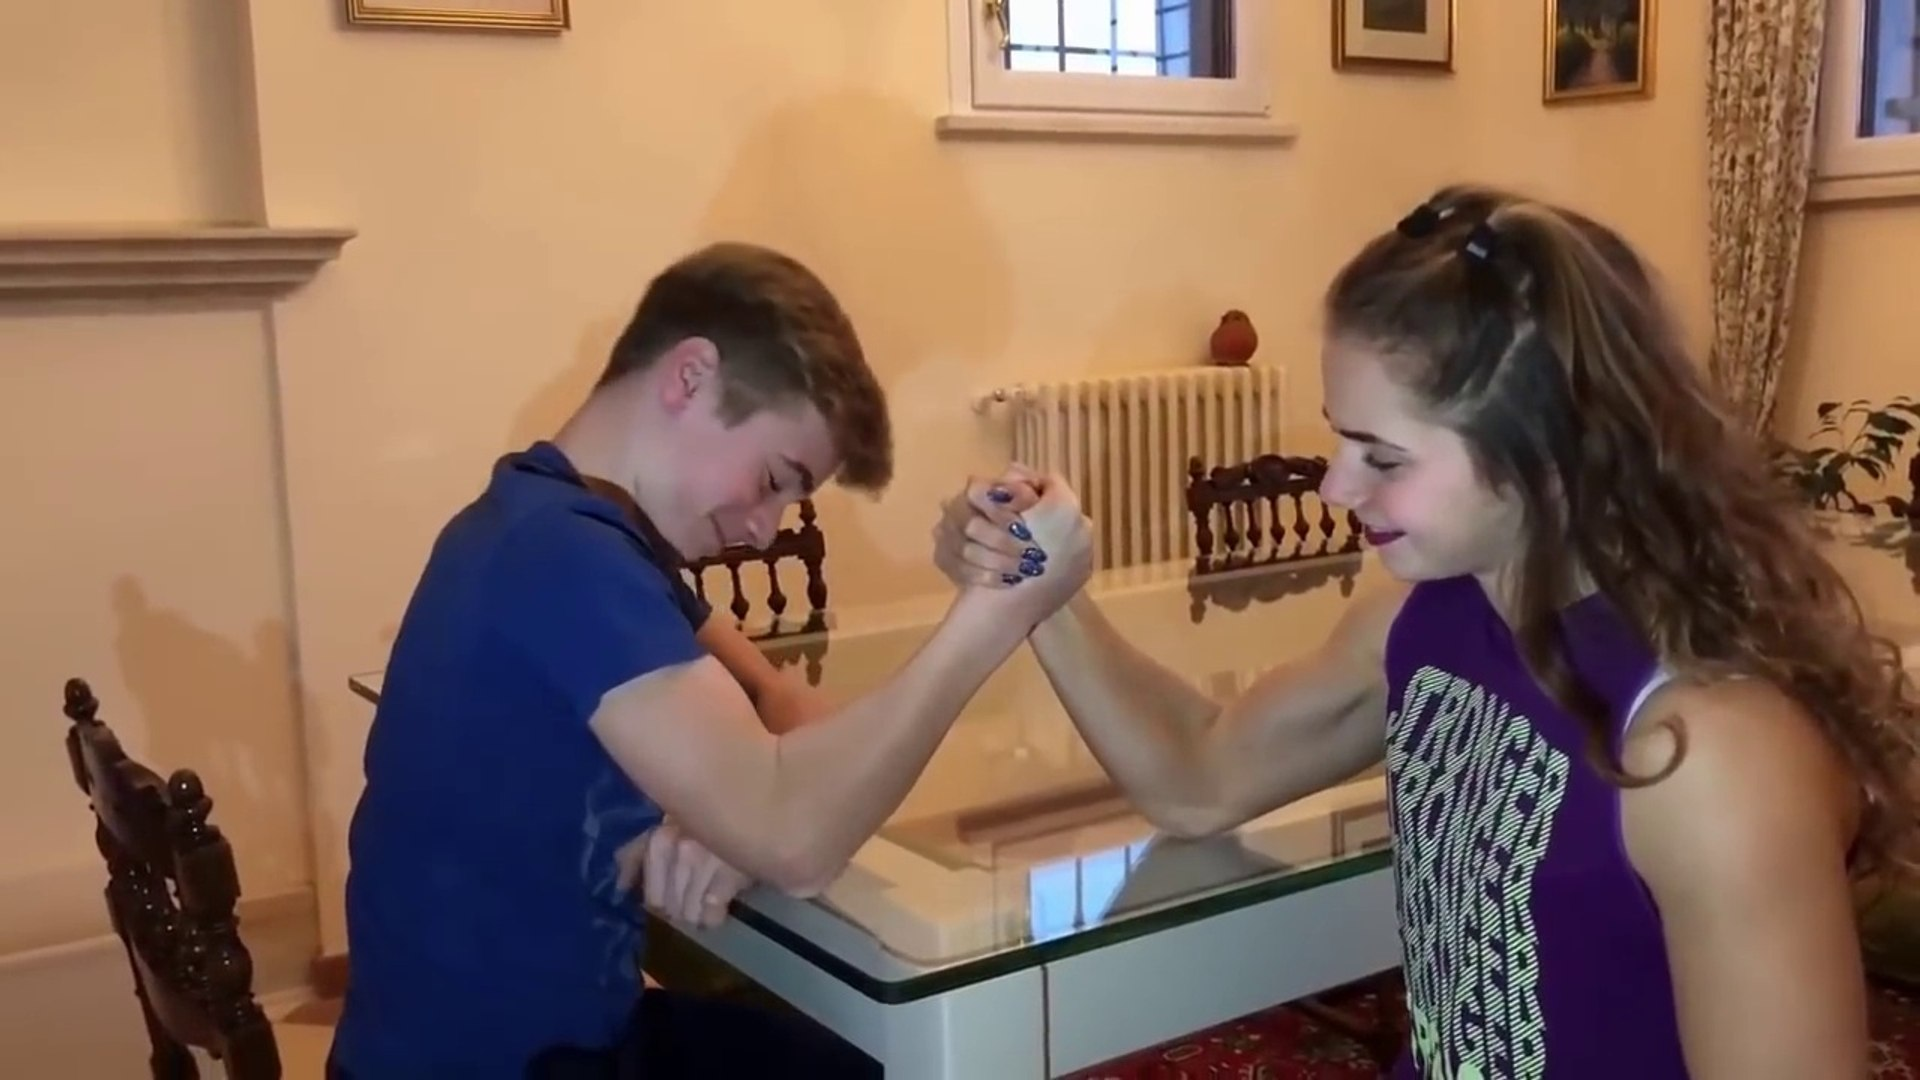 Teen muscle girl Emily Gervasio flexing biceps and mixed Armwrestling